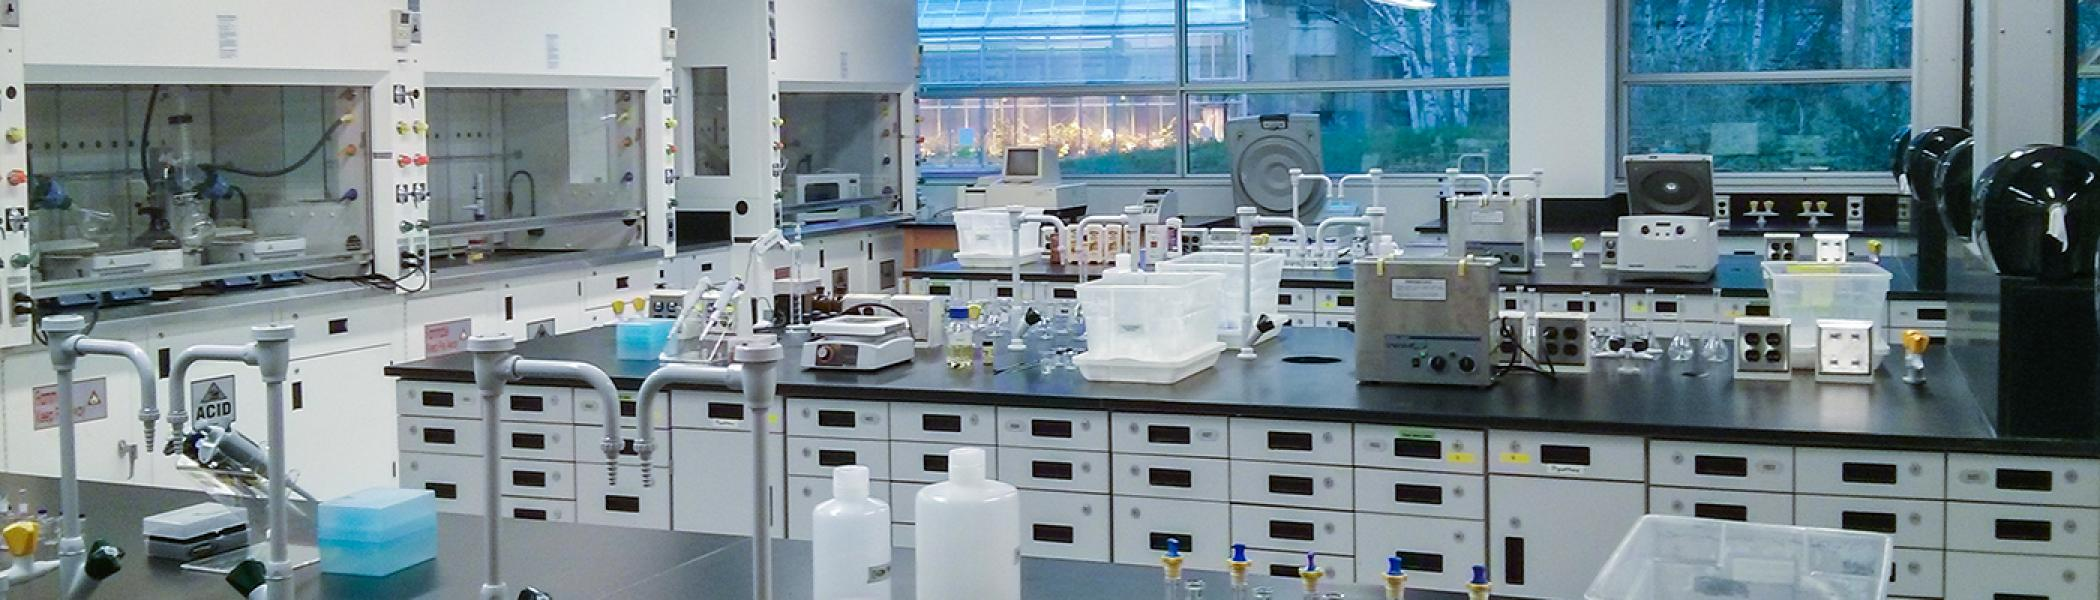 Chemistry laboratory set up with various pieces of equipment on black lab benches with grey cabinets underneath, fumehoods along the side wall